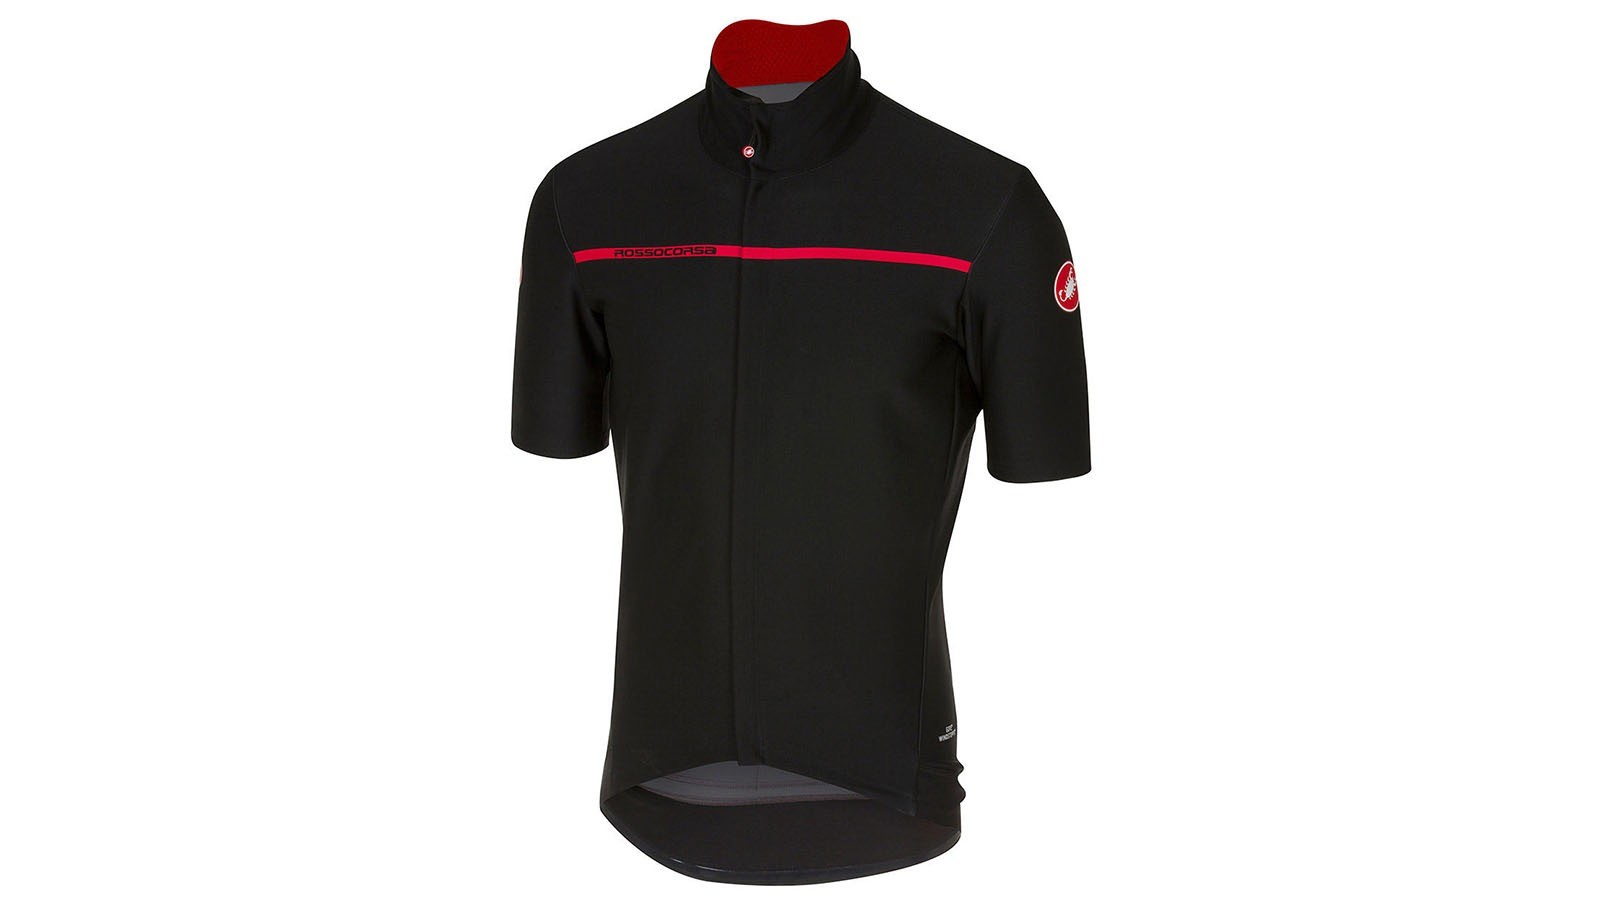 Castelli's Gabba short sleeve rain jersey launched a revolution of sorts in 2011